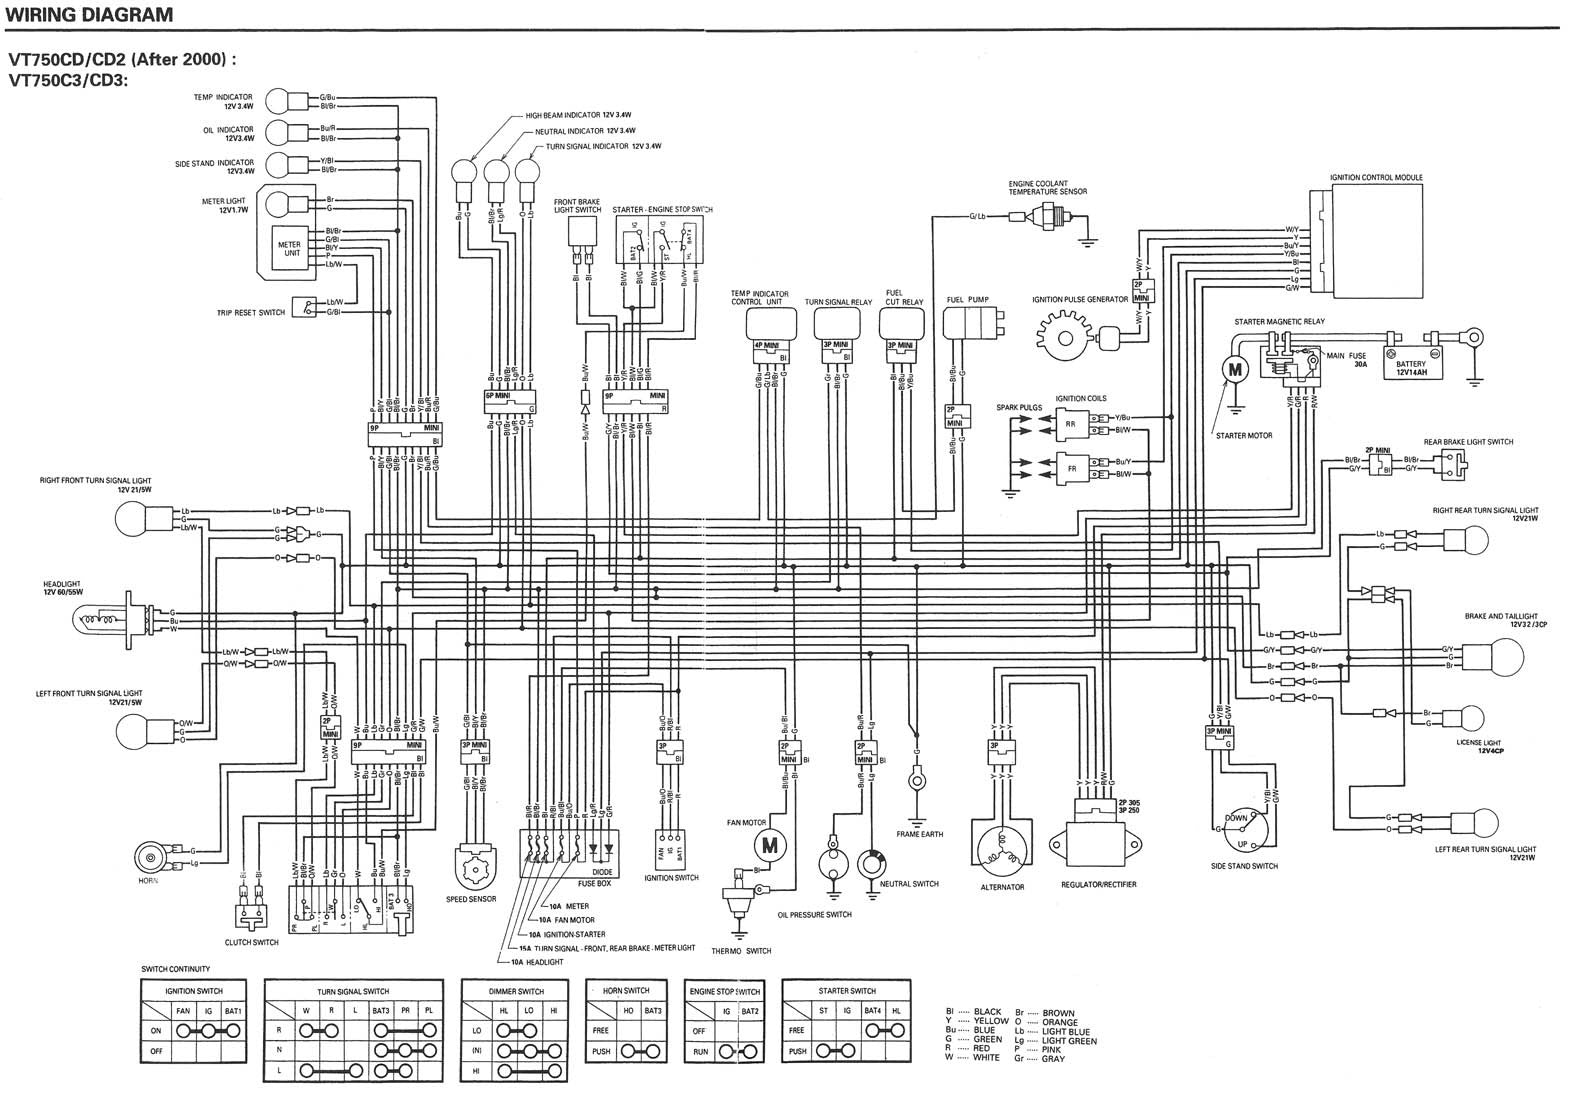 VT750_ACE_Wiring_Diagram_2001 2003_V.2?17490154244262524096 faq tj brutal customs 1985 honda shadow vt1100 wiring diagram at readyjetset.co